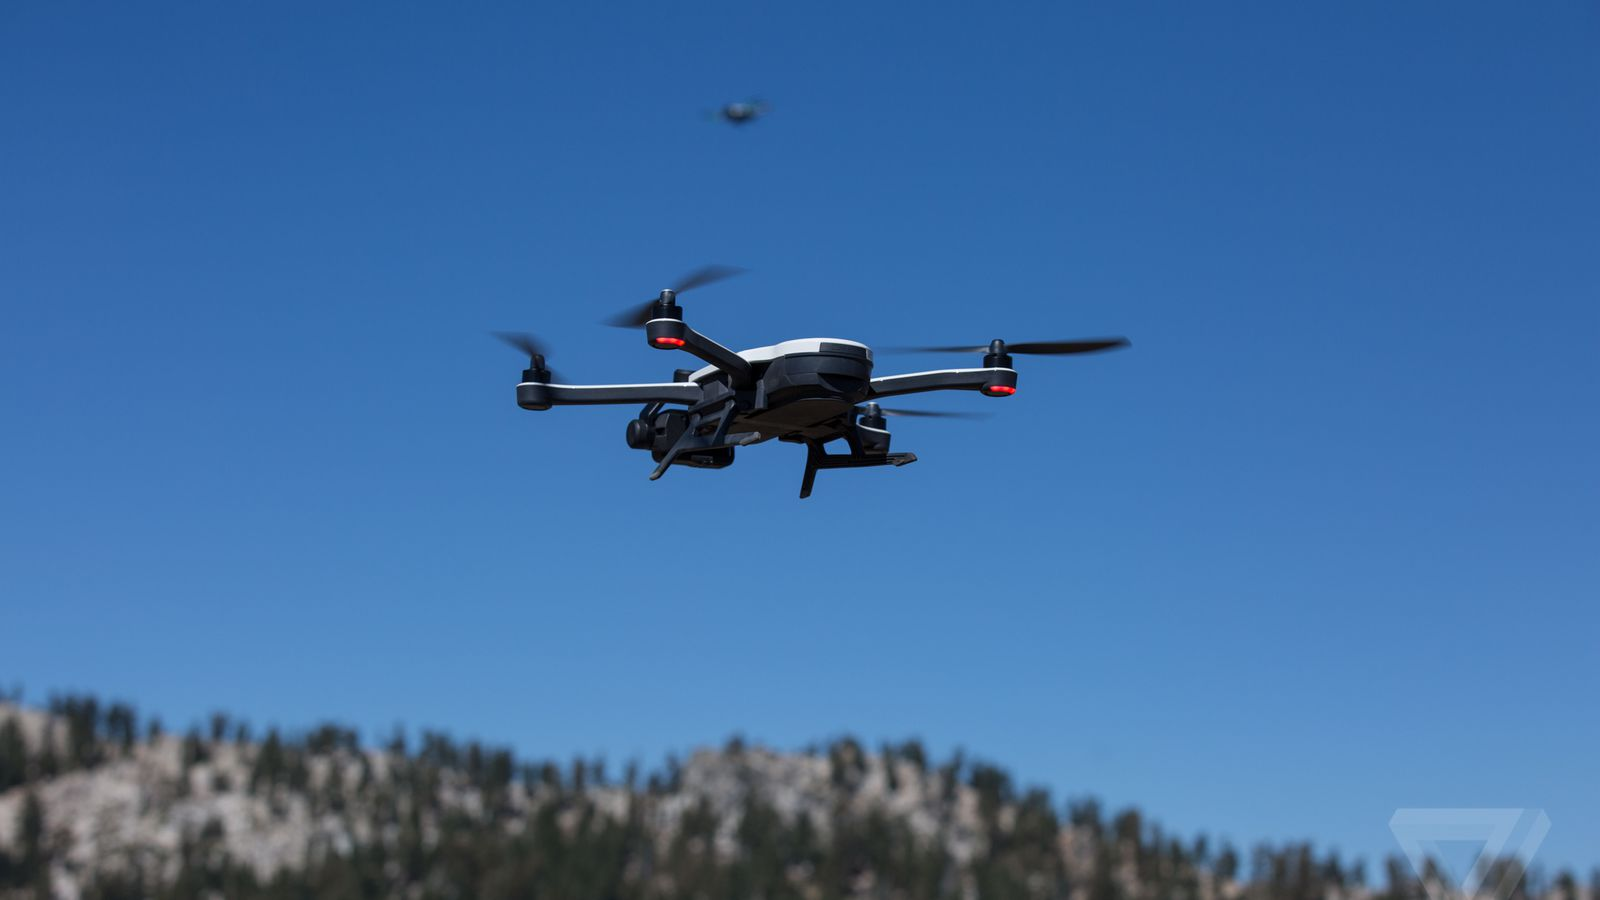 NASA Study Confirms Drone Buzzes are More Annoying than Cars